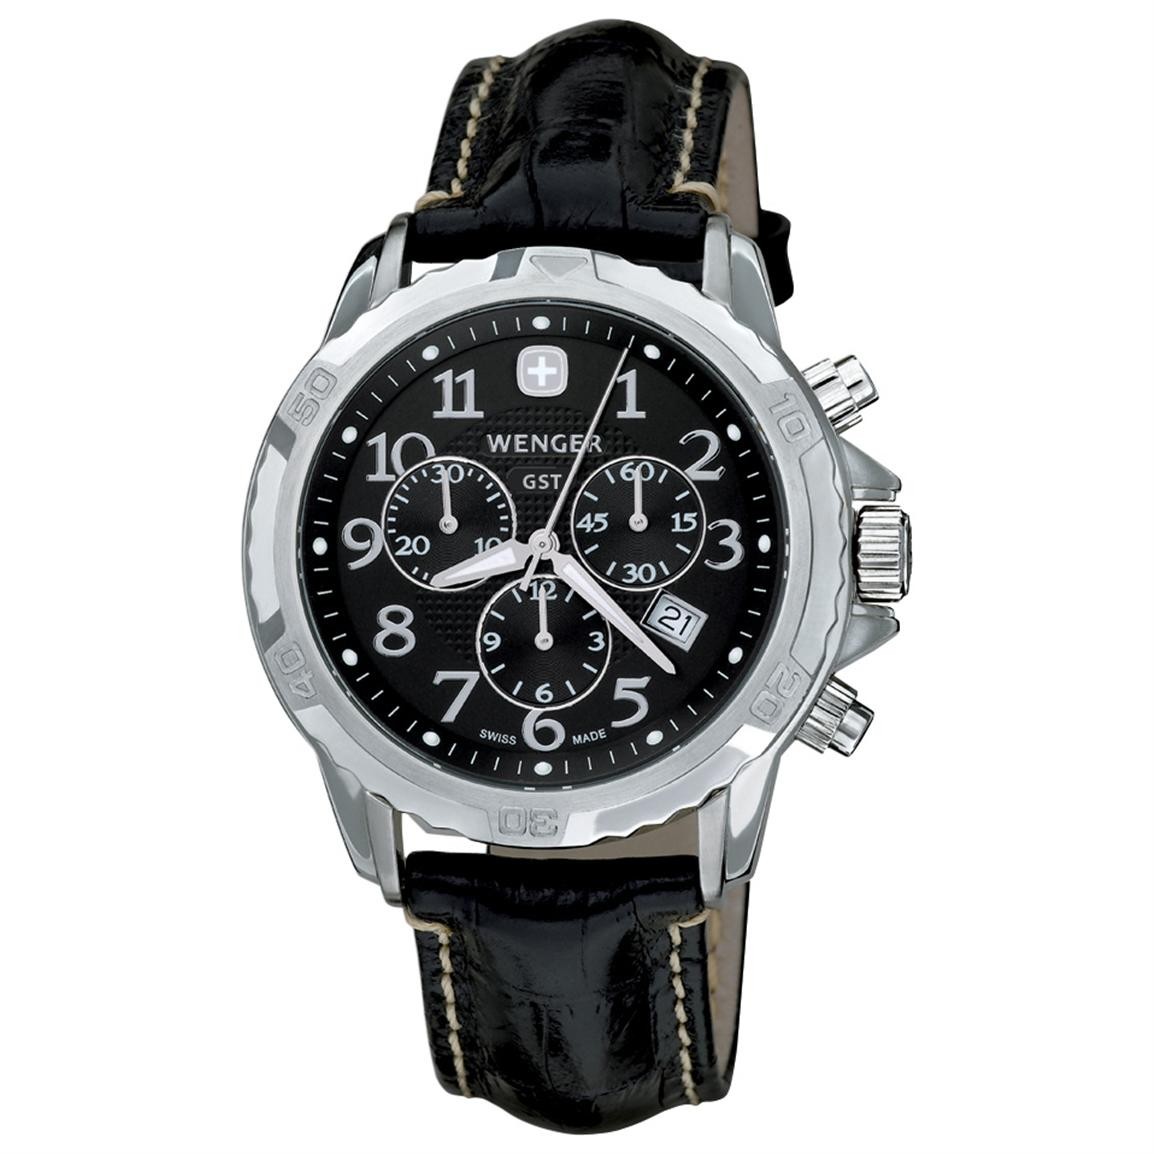 Men's Wenger® 78255 GST® Chronograph Watch with Leather Band